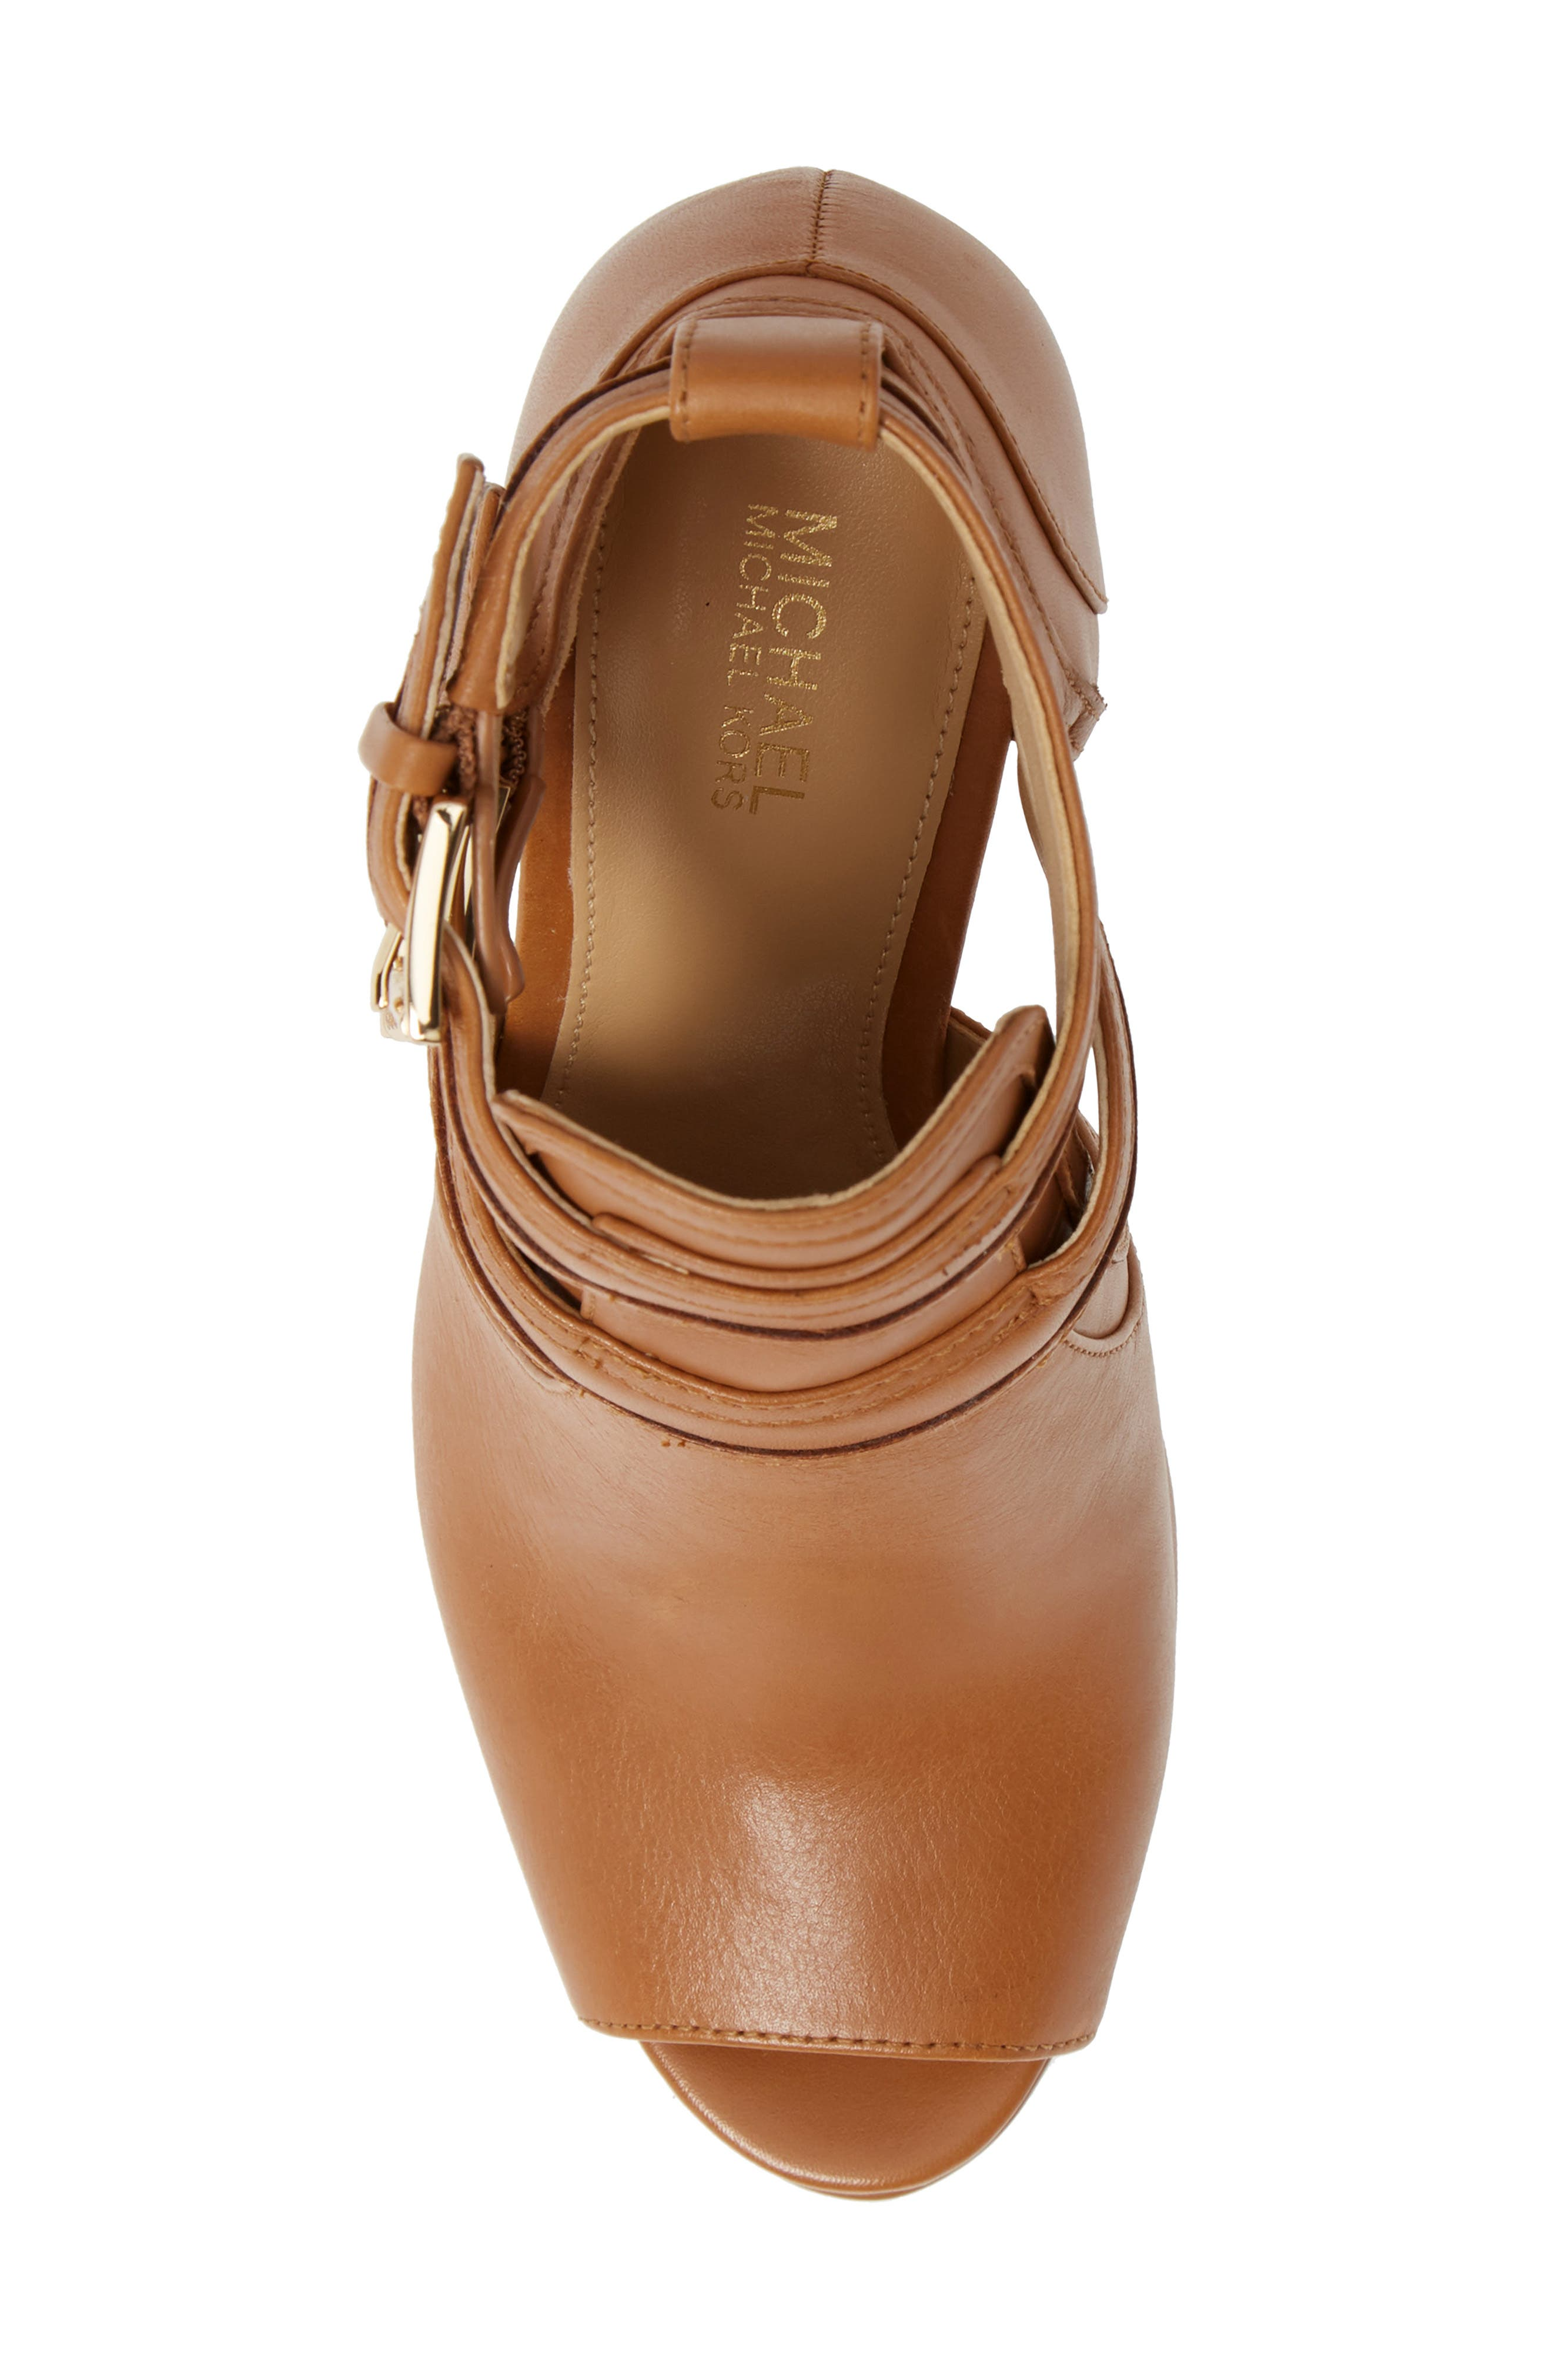 MICHAEL MICHAEL KORS, Blaze Peep Toe Buckle Bootie, Alternate thumbnail 5, color, ACORN LEATHER